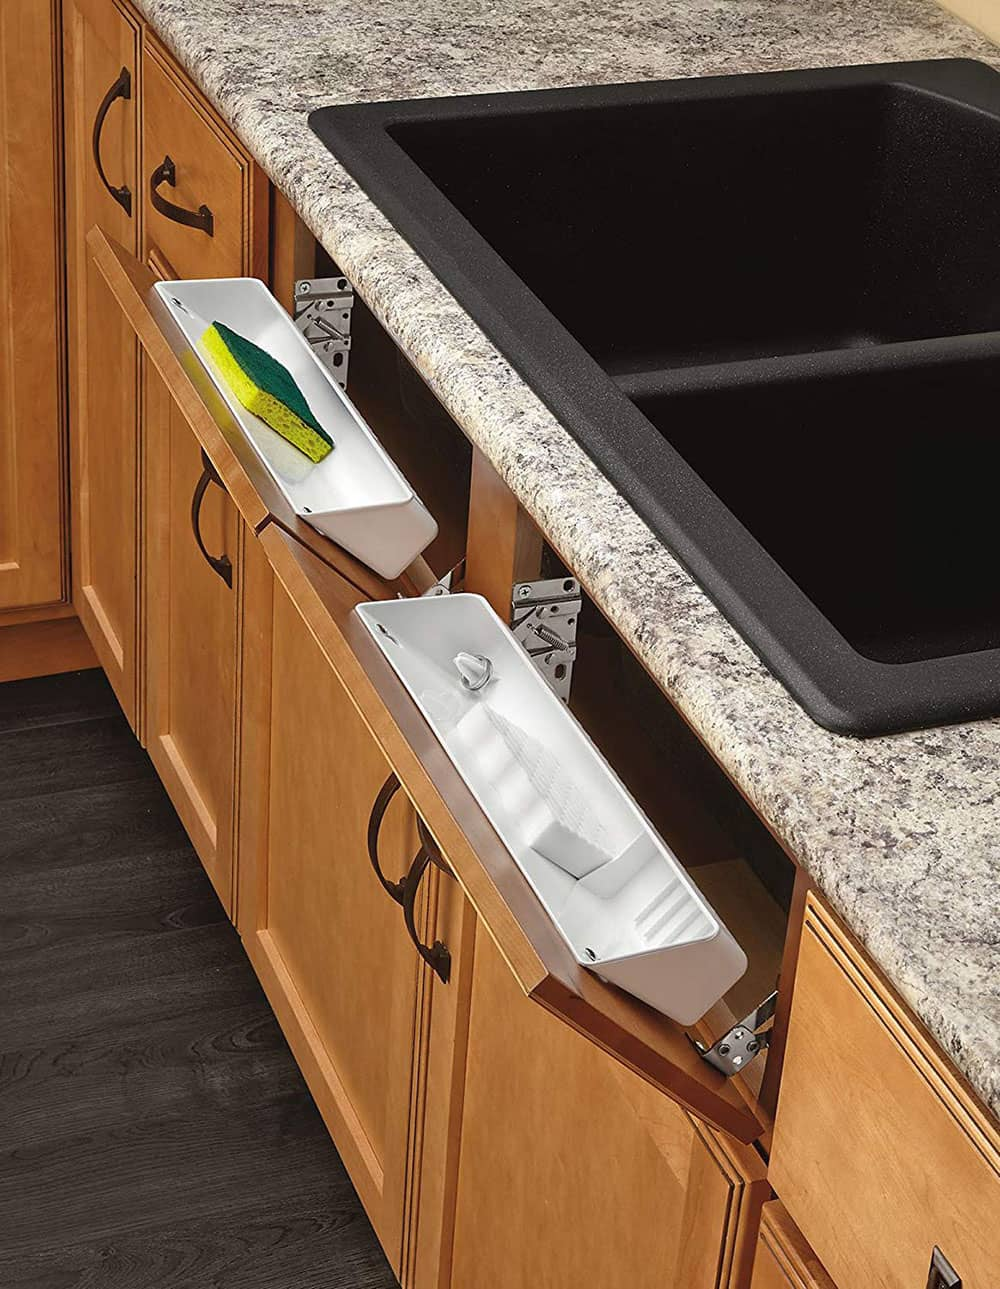 Kitchen tip out trays.